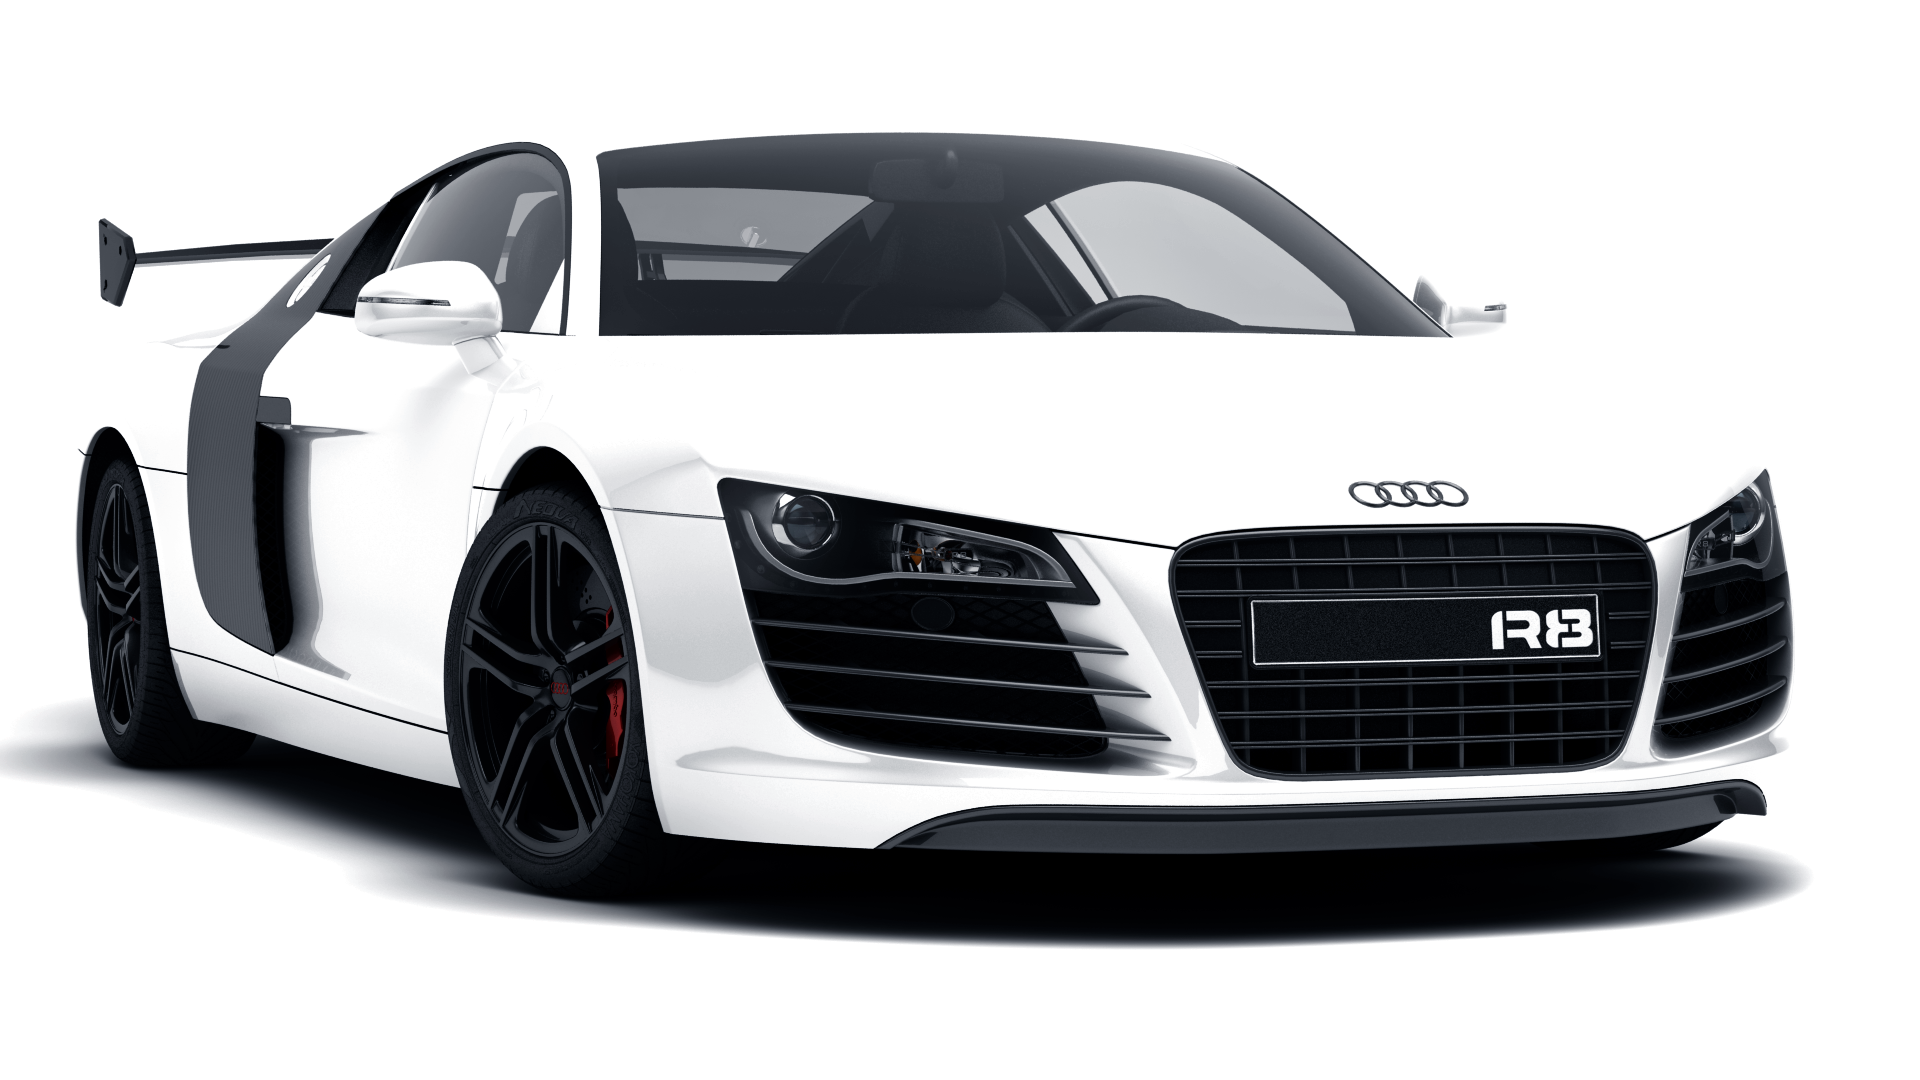 Cars Audi Roads R8 White V10 Wallpaper Allwallpaper In: Audi_r8_white_by_drcodec-d3kuj6h.png (1920×1080)